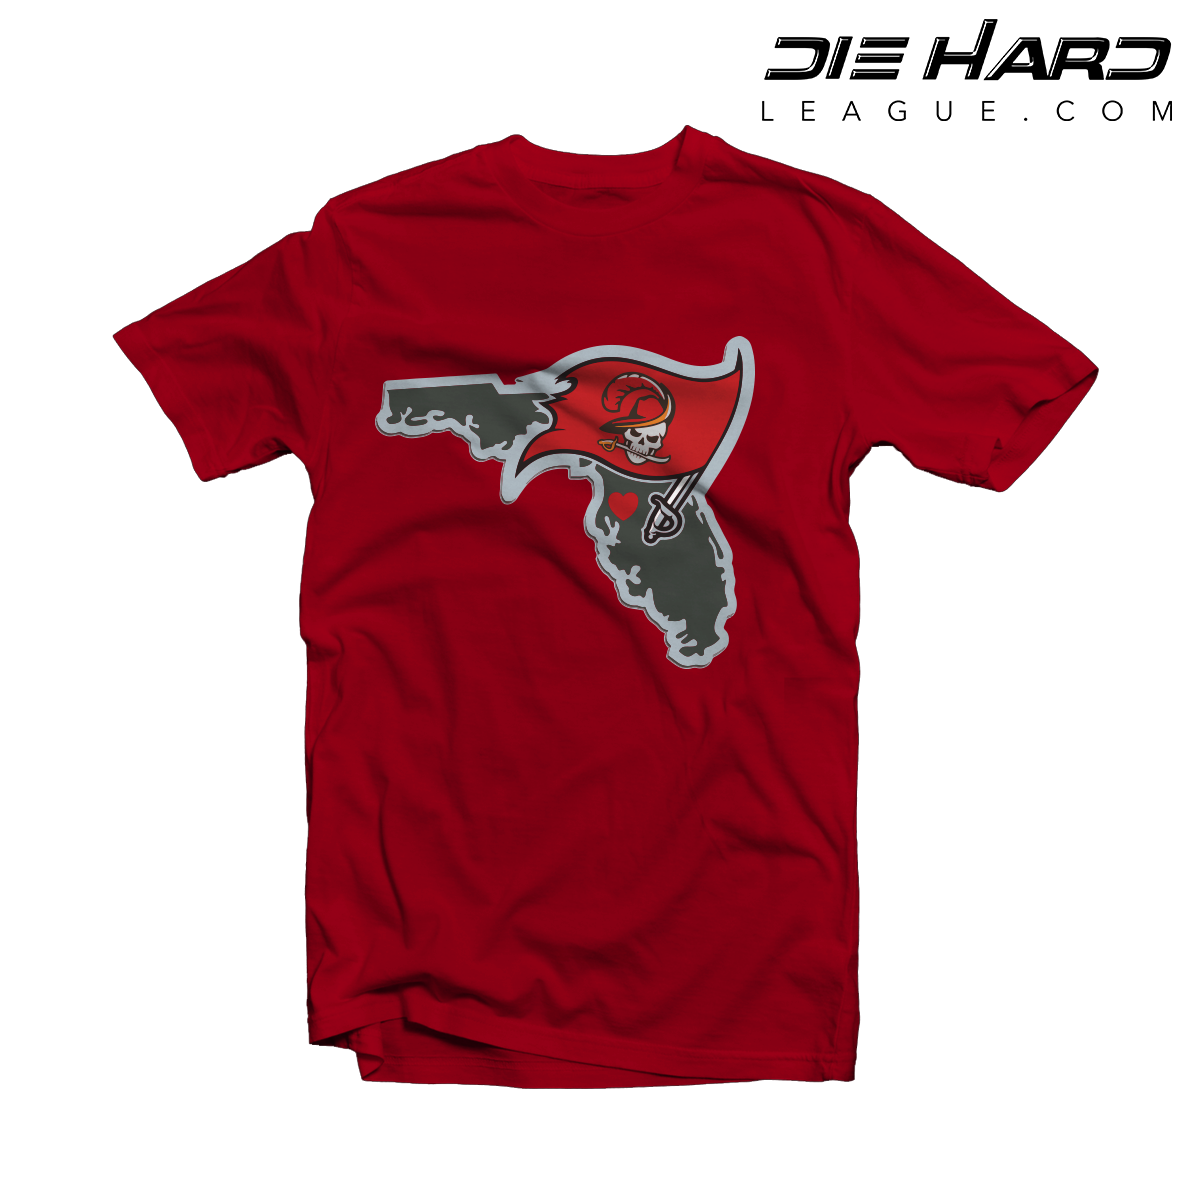 Tampa Bay Buccaneers T Shirt Tampa Bay Map Red Tee f65725969